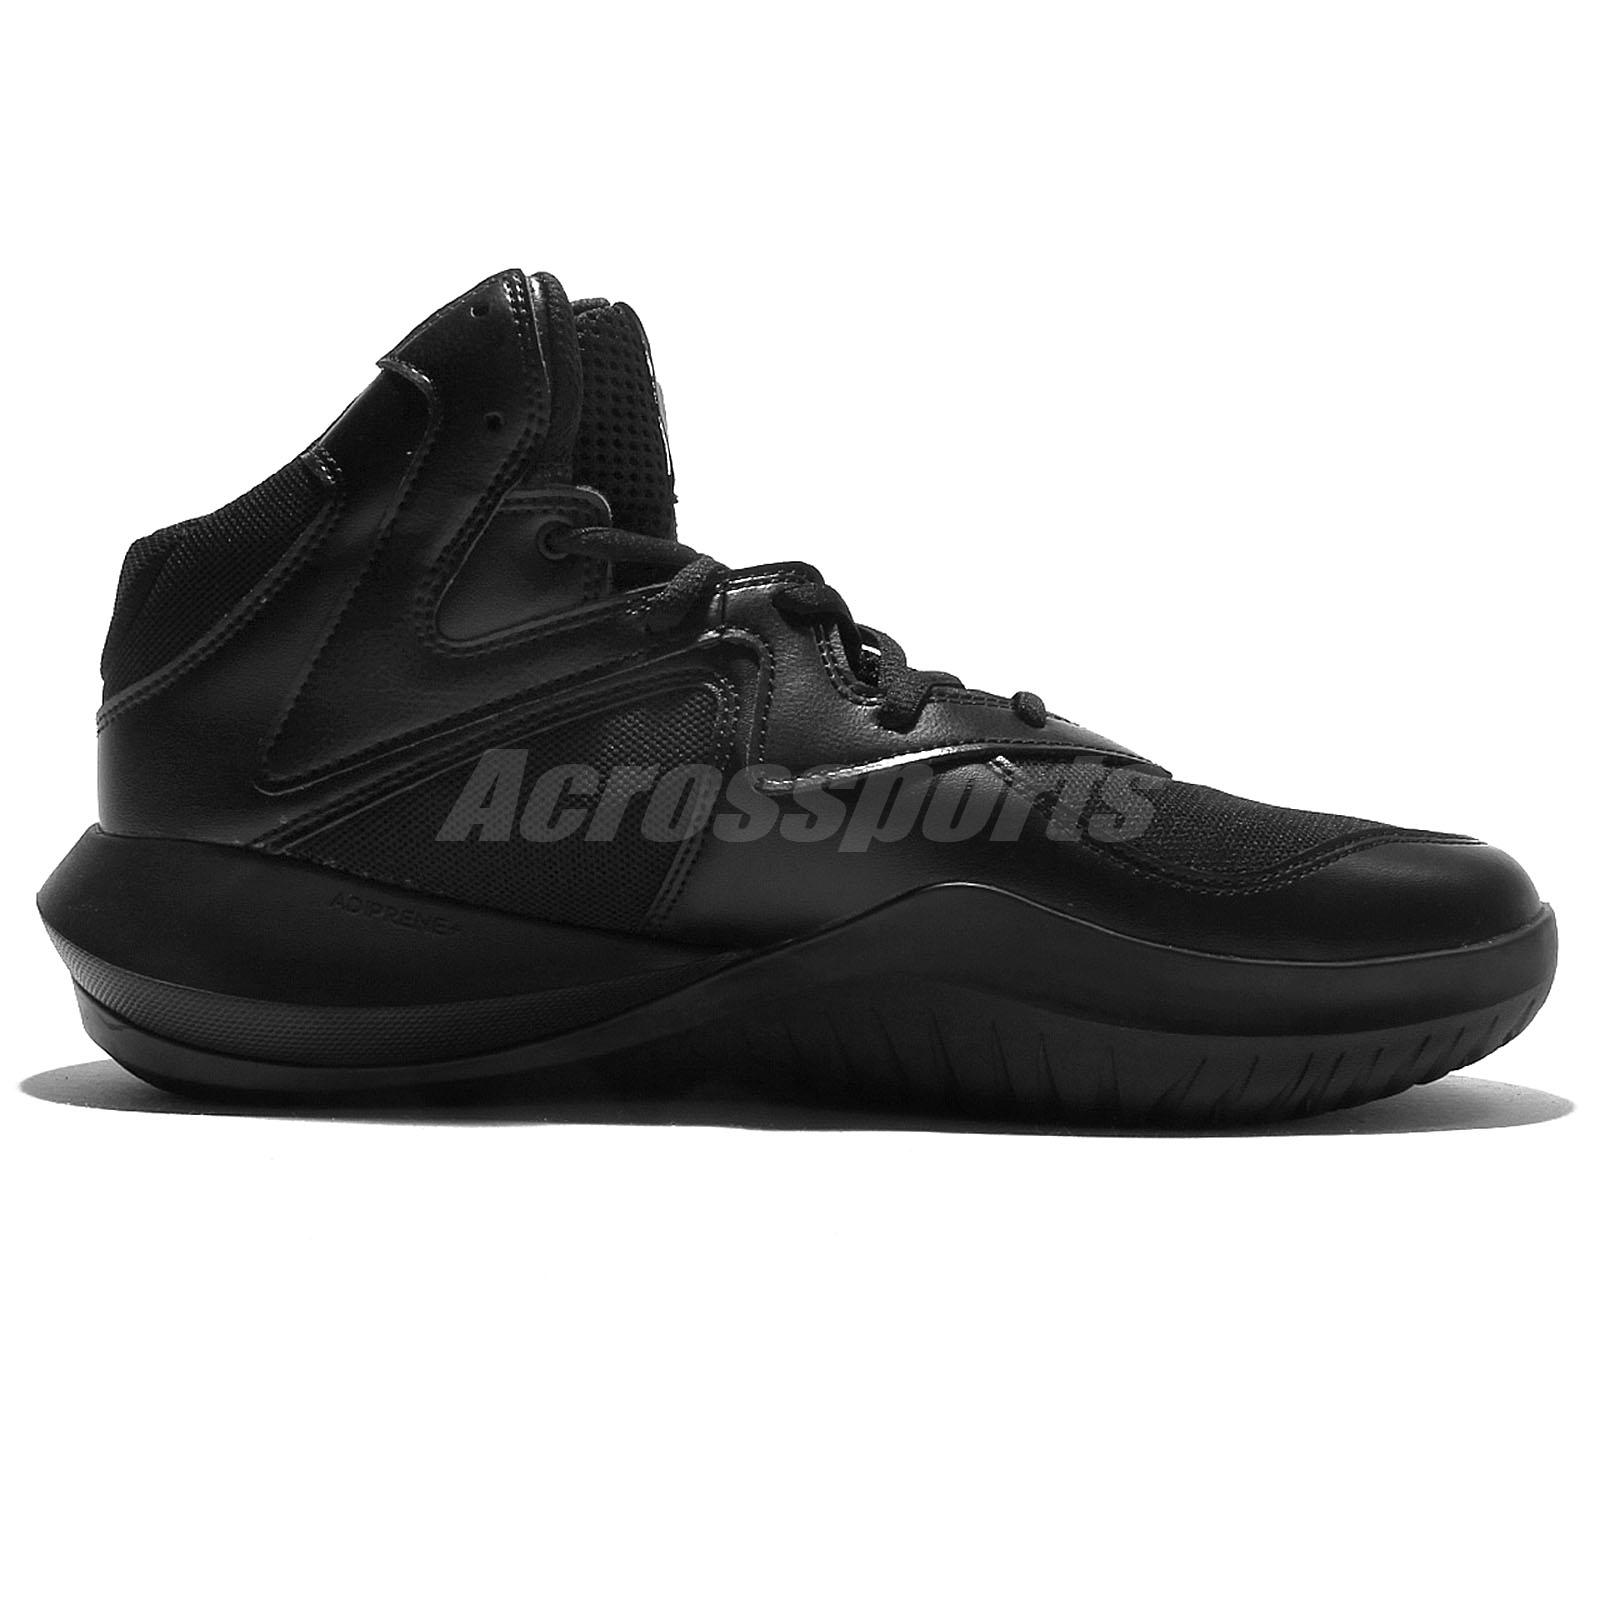 adidas basketball shoes 2017. condition: brand new with box adidas basketball shoes 2017 \